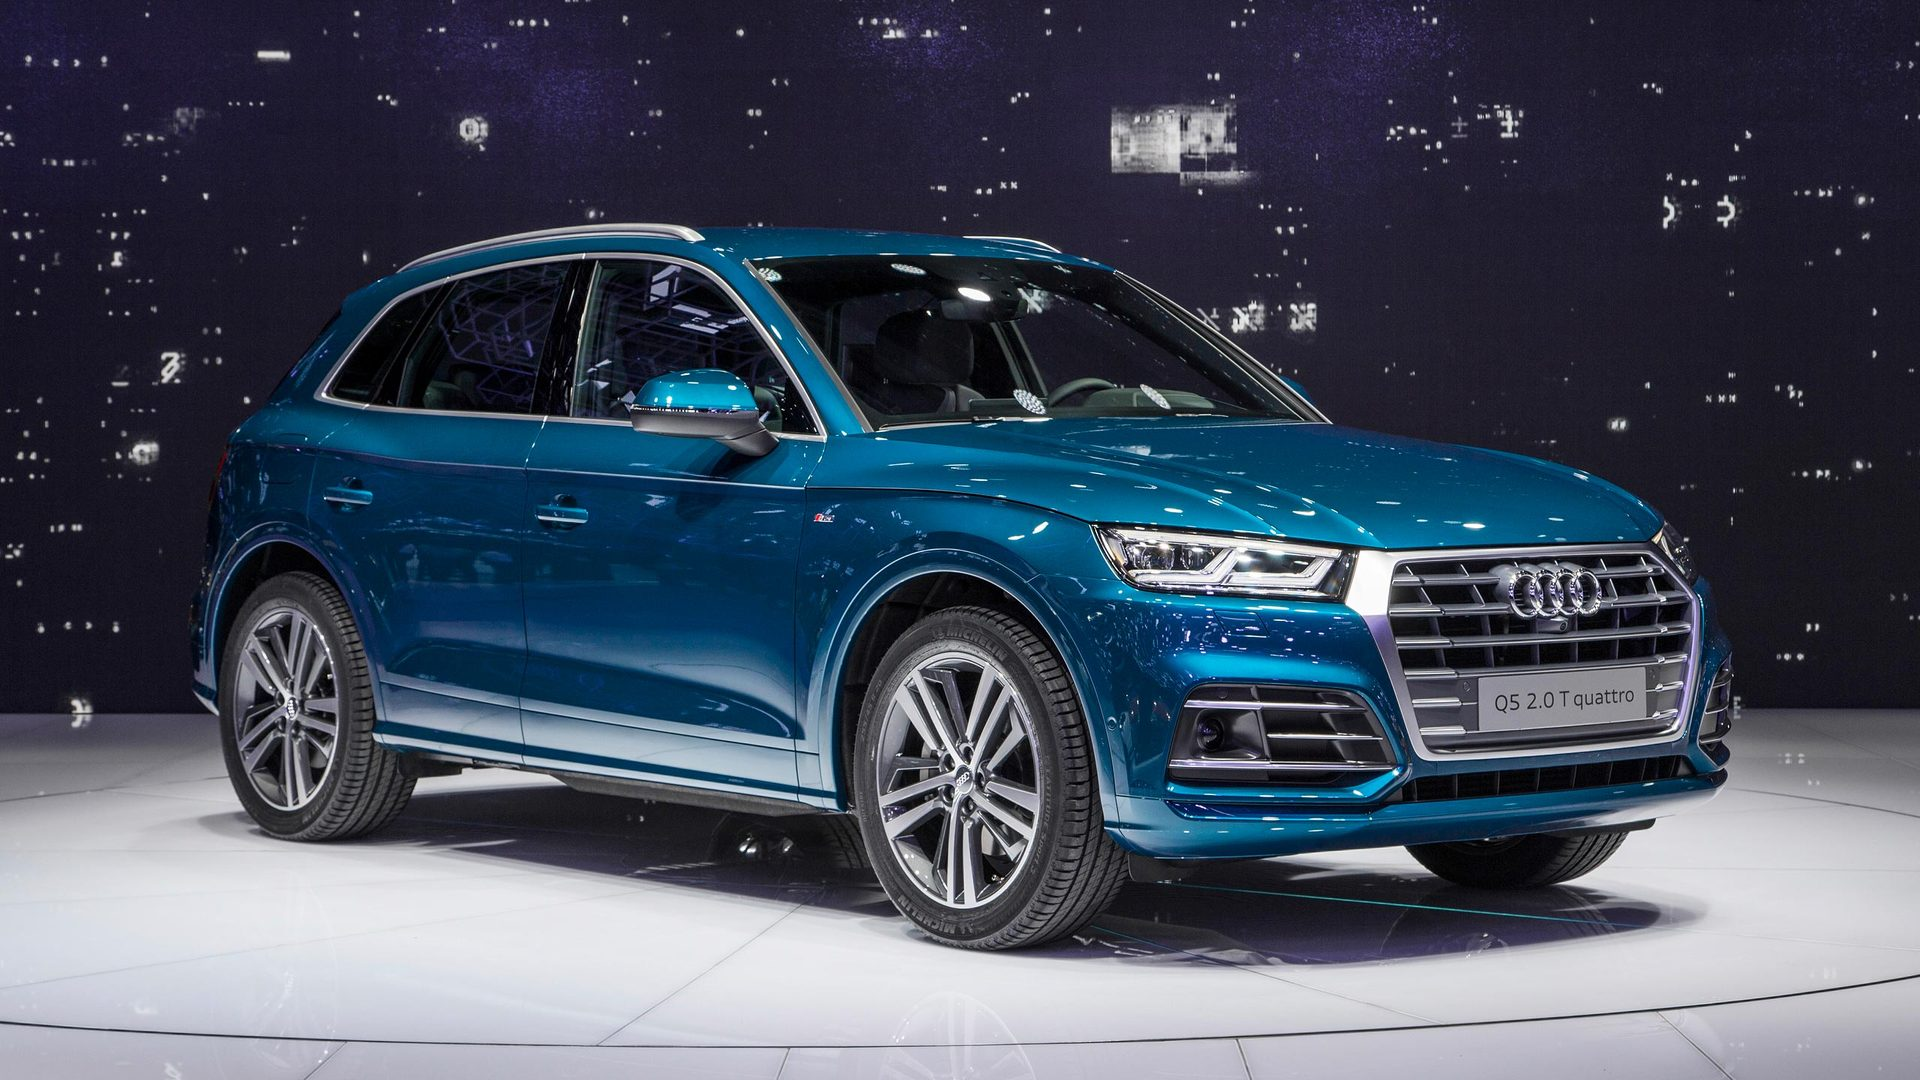 2017 Audi Q5 Blue 200 Interior And Exterior Images